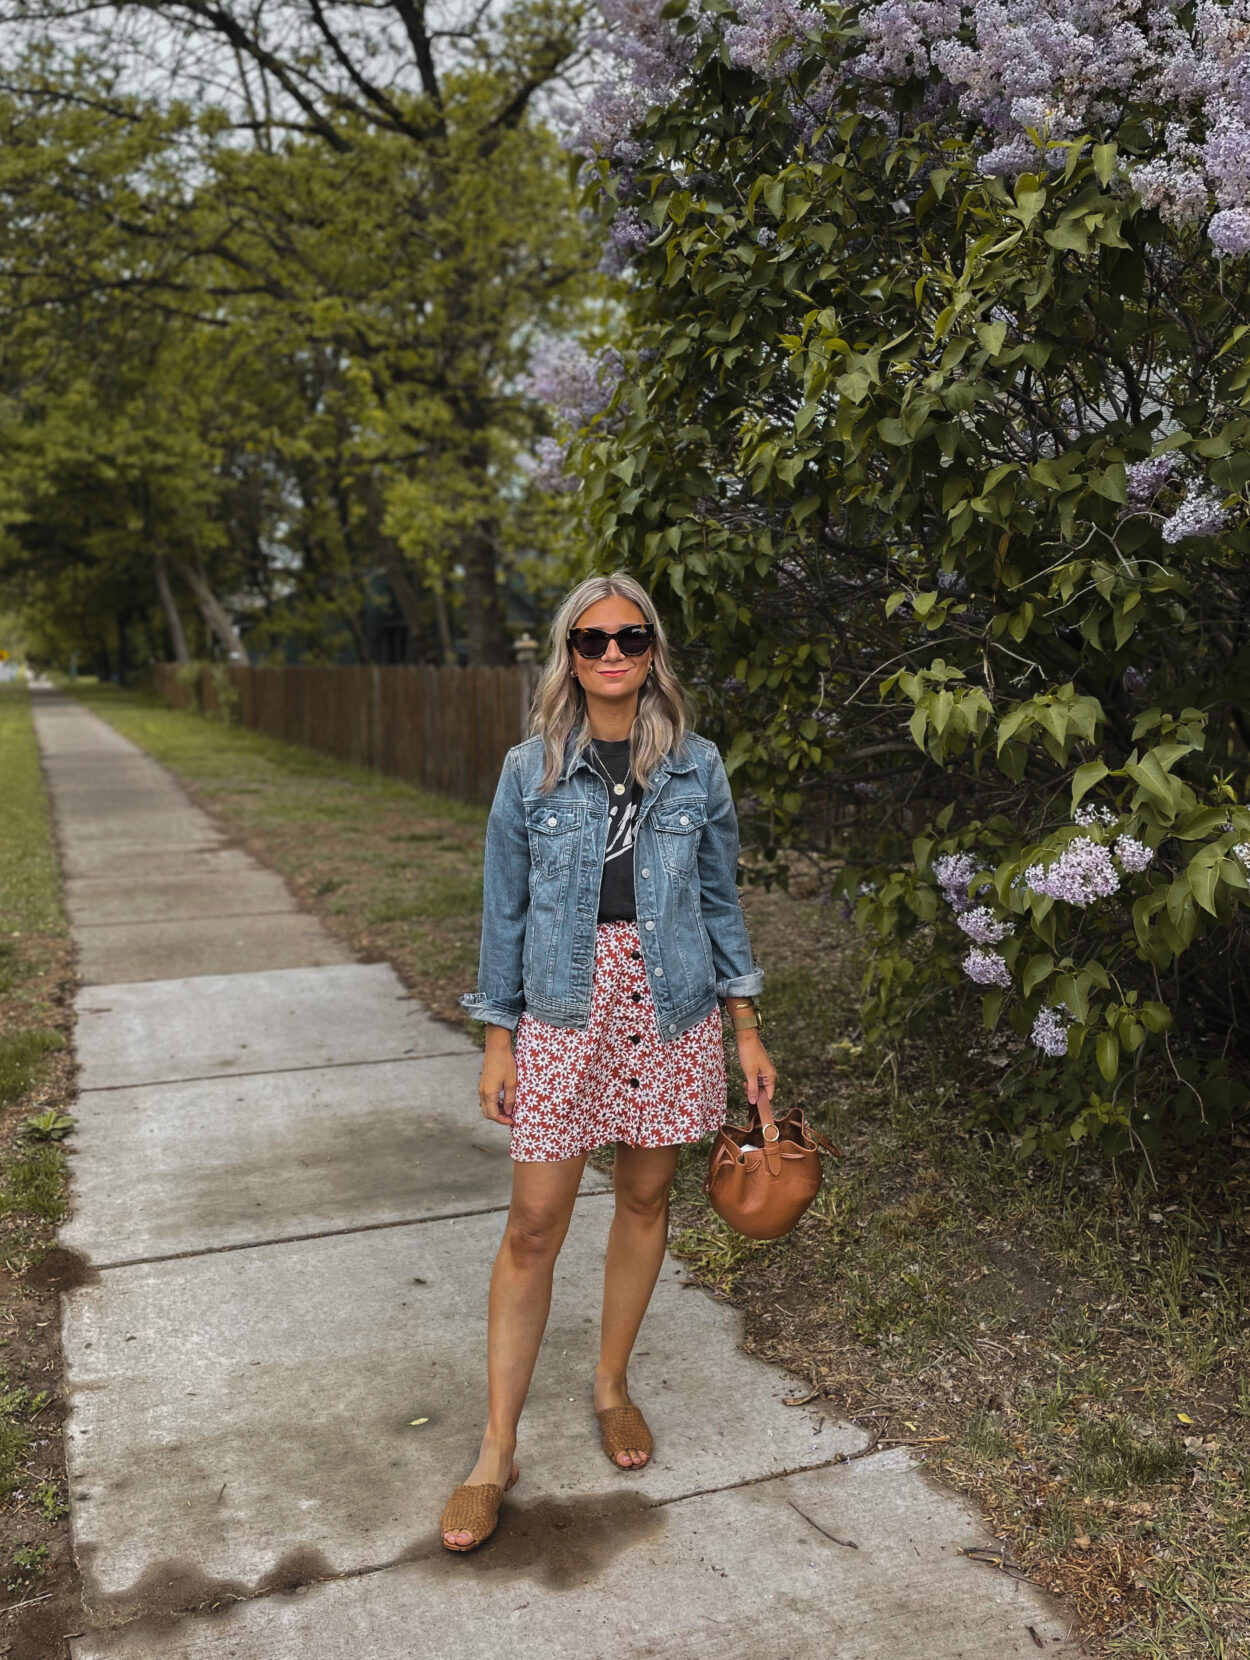 How to Style a Mini Skirt for Transitional Weather, Madewell Mini skirt, Madewell floral skirt, Best Jean Jacket, Anine Bing Graphic Tee